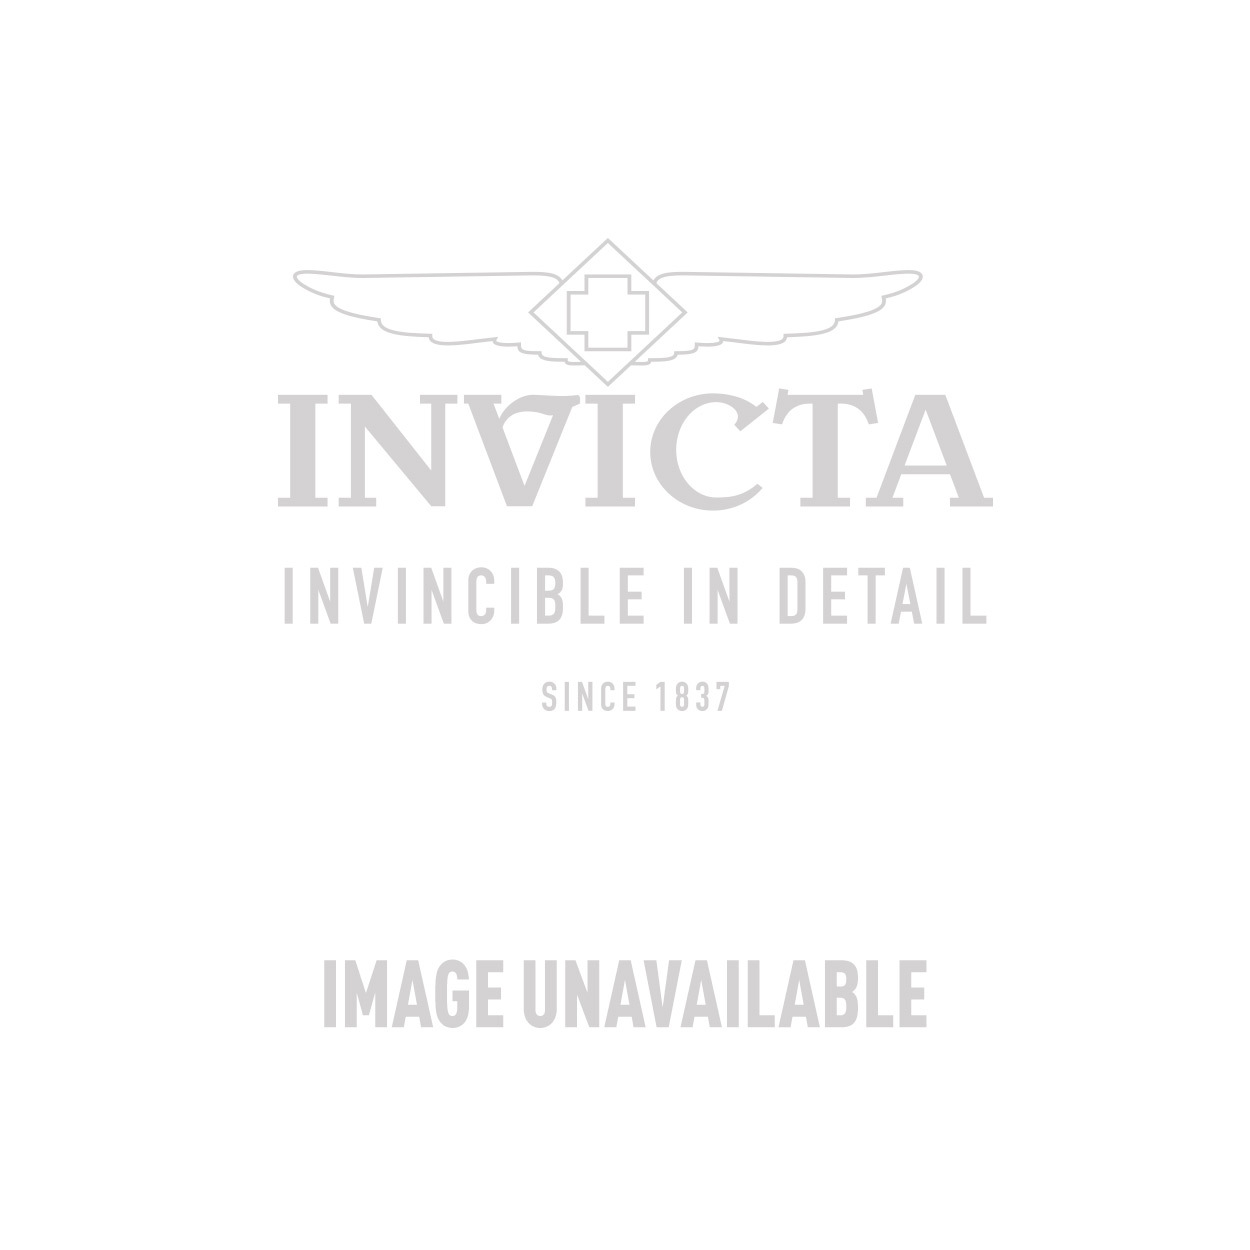 Invicta Bolt Swiss Made Quartz Watch - Gold case with Gold tone Stainless Steel band - Model 16956